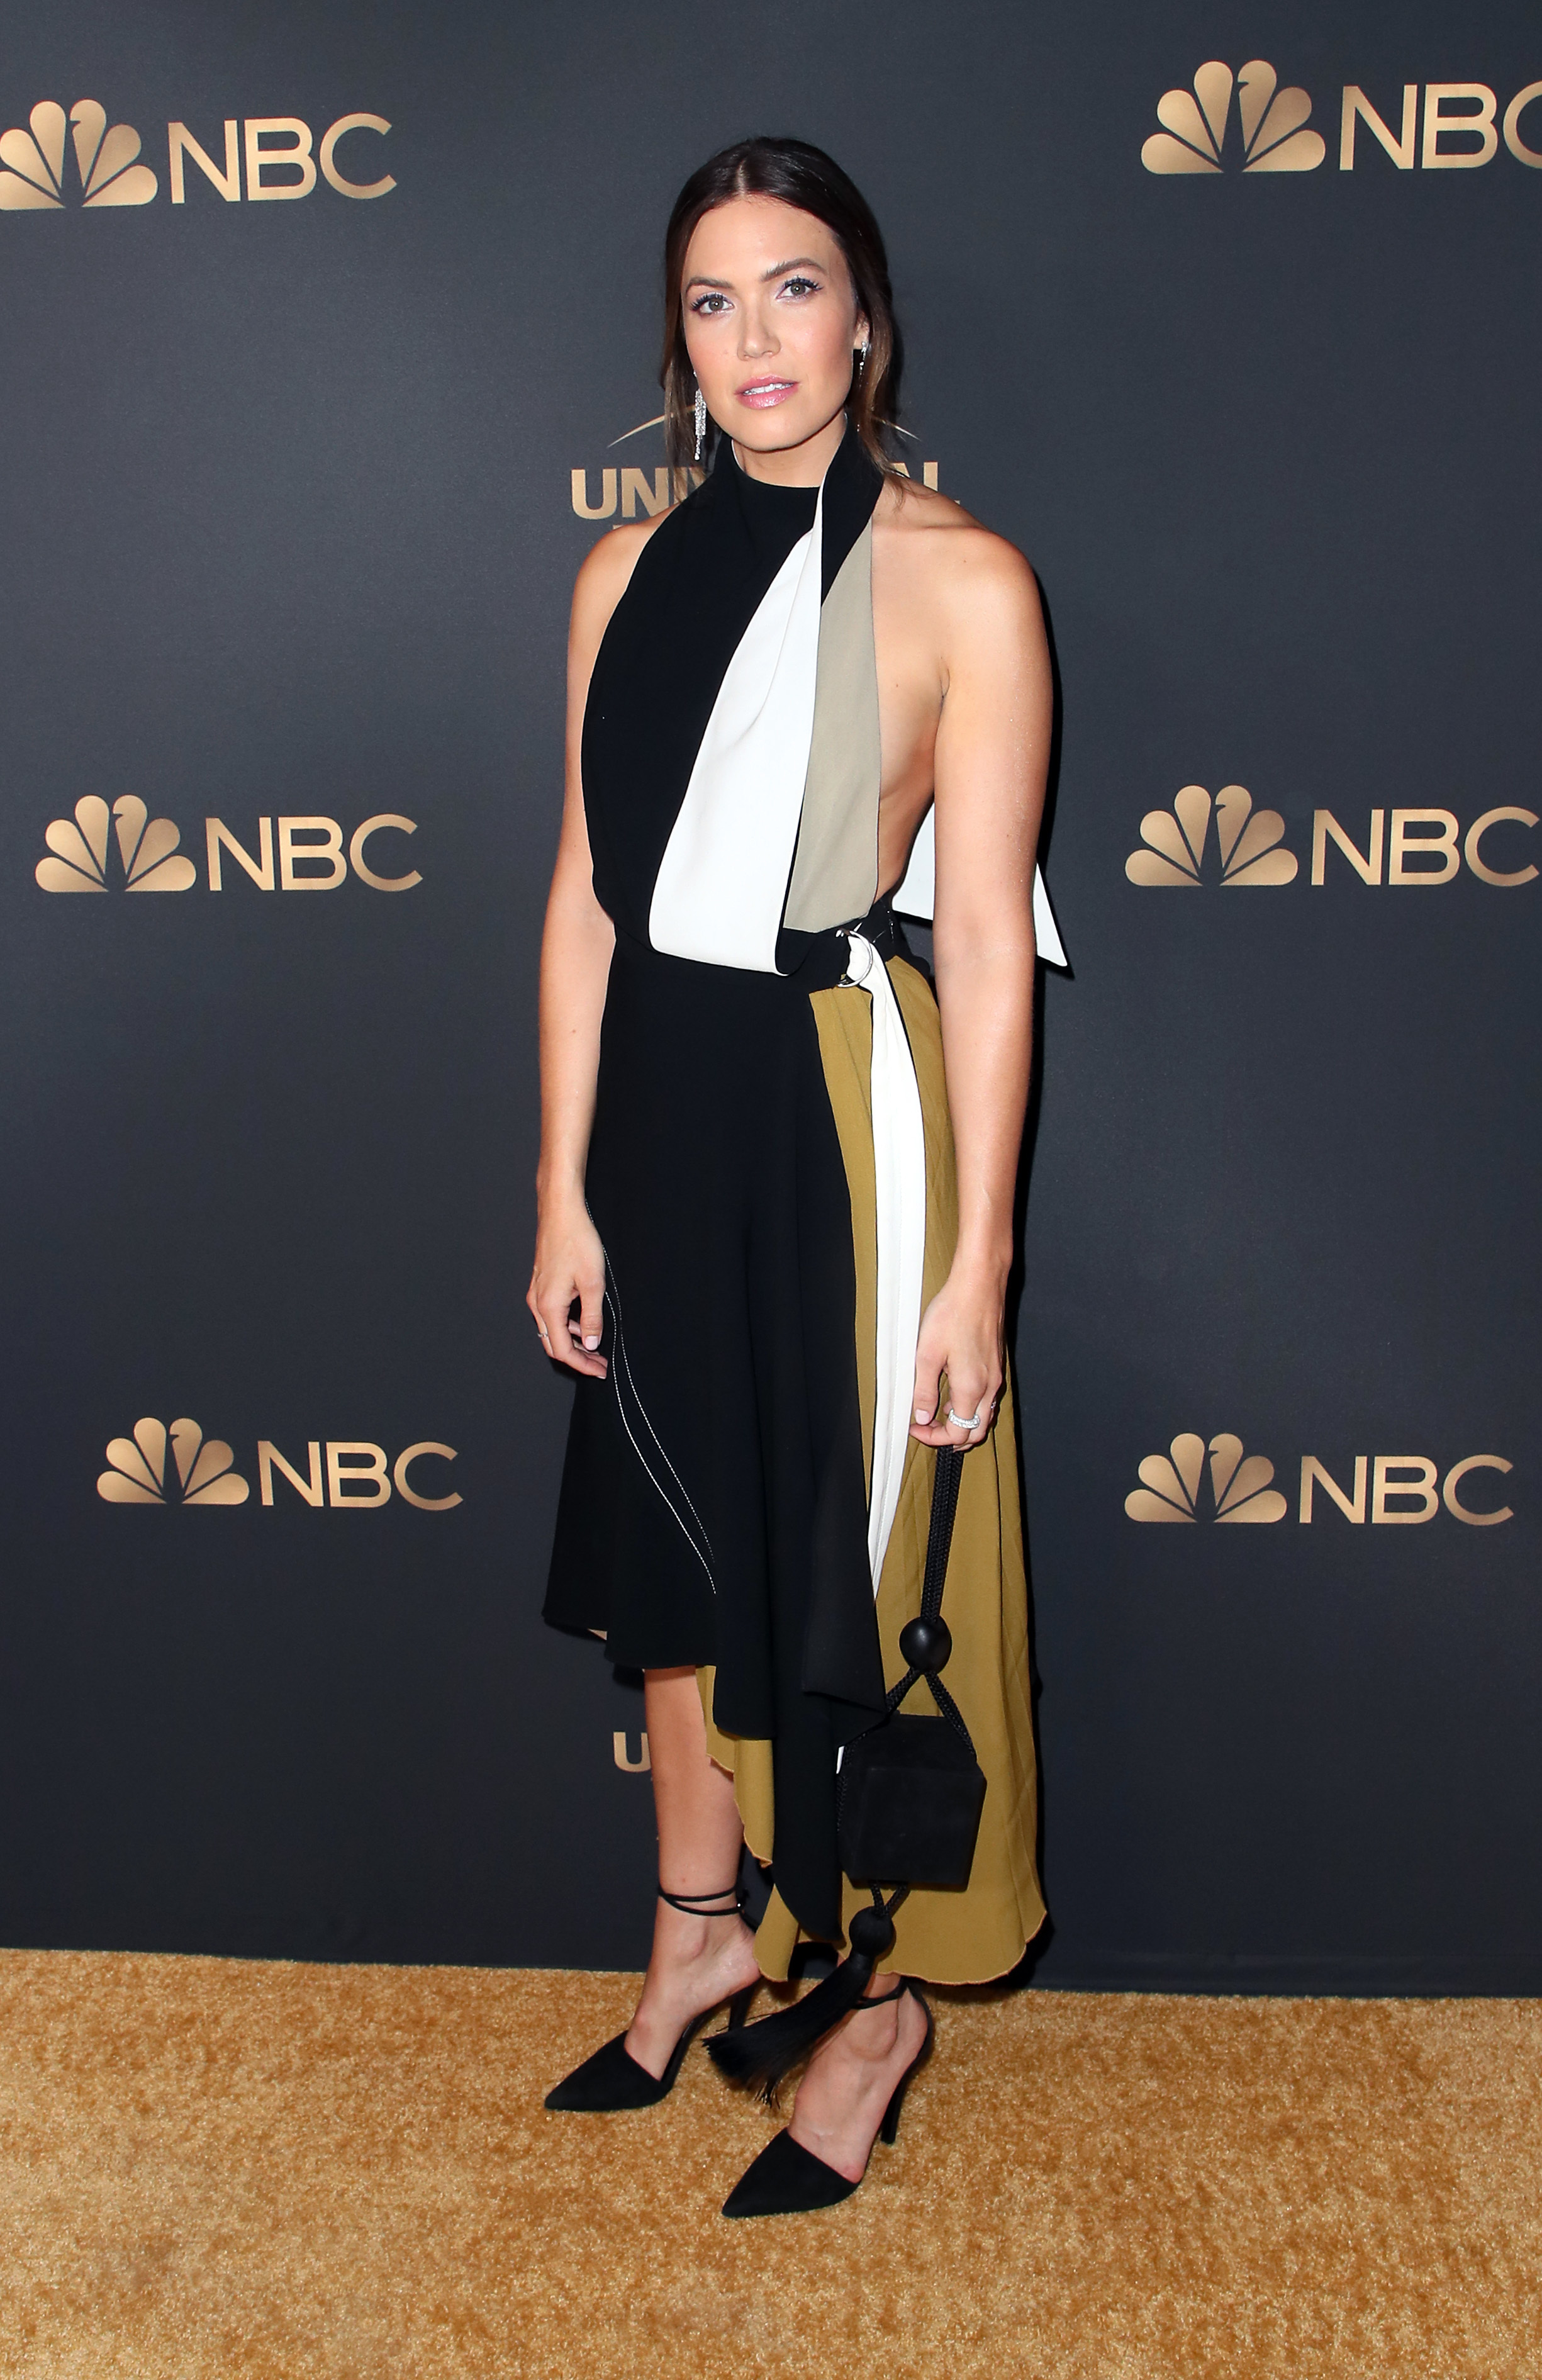 Mandy Moore attends the NBC and Universal EMMY nominee celebration at Tesse Restaurant in West Hollywood, California, on August 13, 2019.